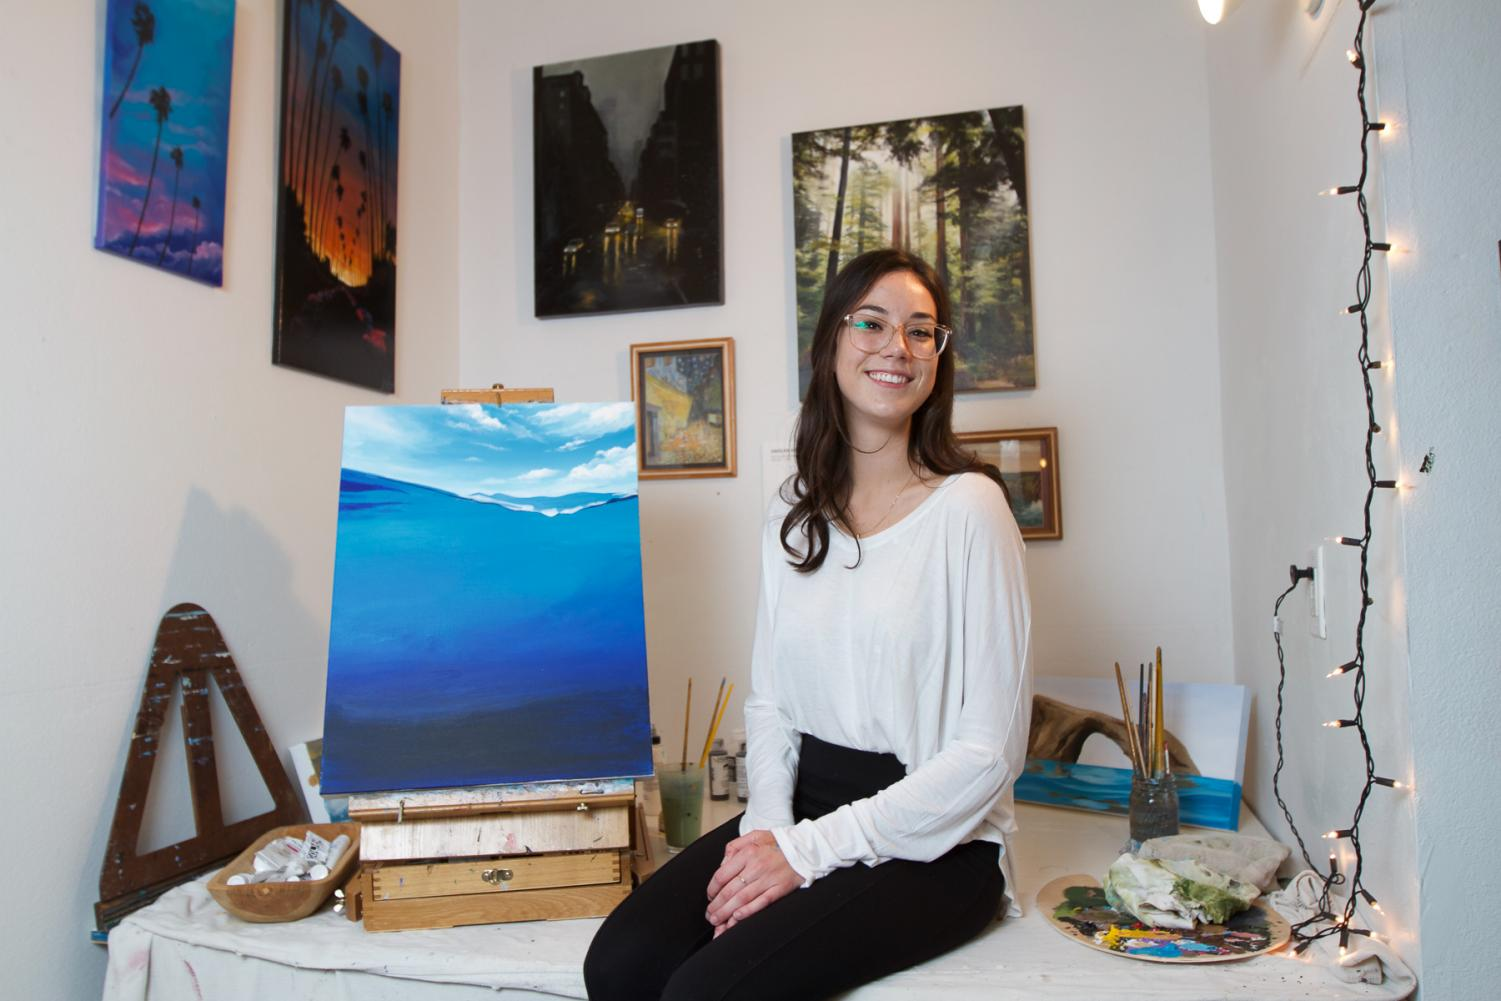 Artist and marine biology major Havilah Abrego sits in her private home art studio on Thursday evening, Oct. 17, 2019, in Ventura, Calif. Abrego has developed her artistic passion through the inspiration of her father and grandfather's artwork.